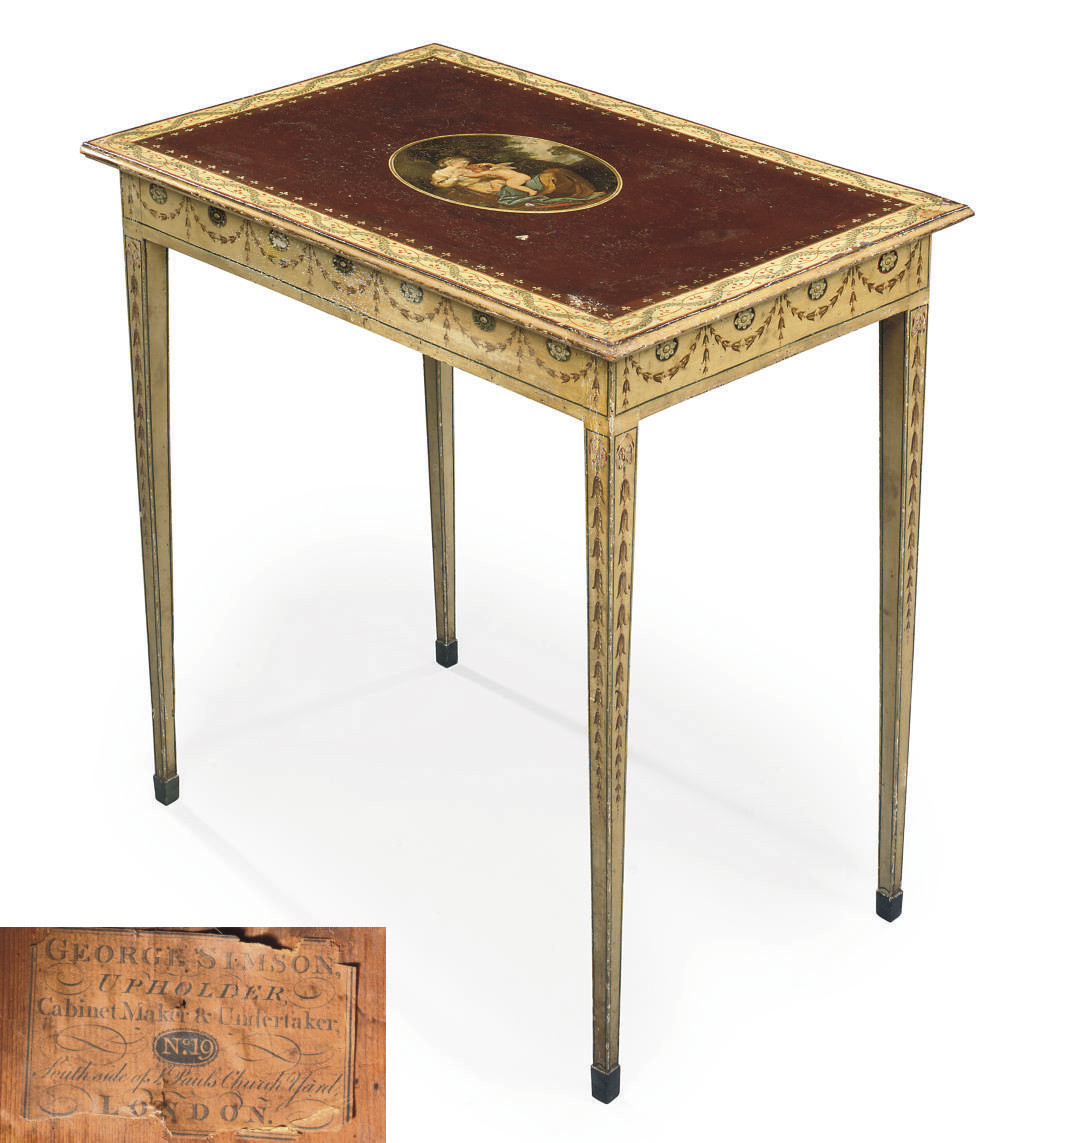 A GEORGE III POLYCHROME-DECORATED CENTRE TABLE